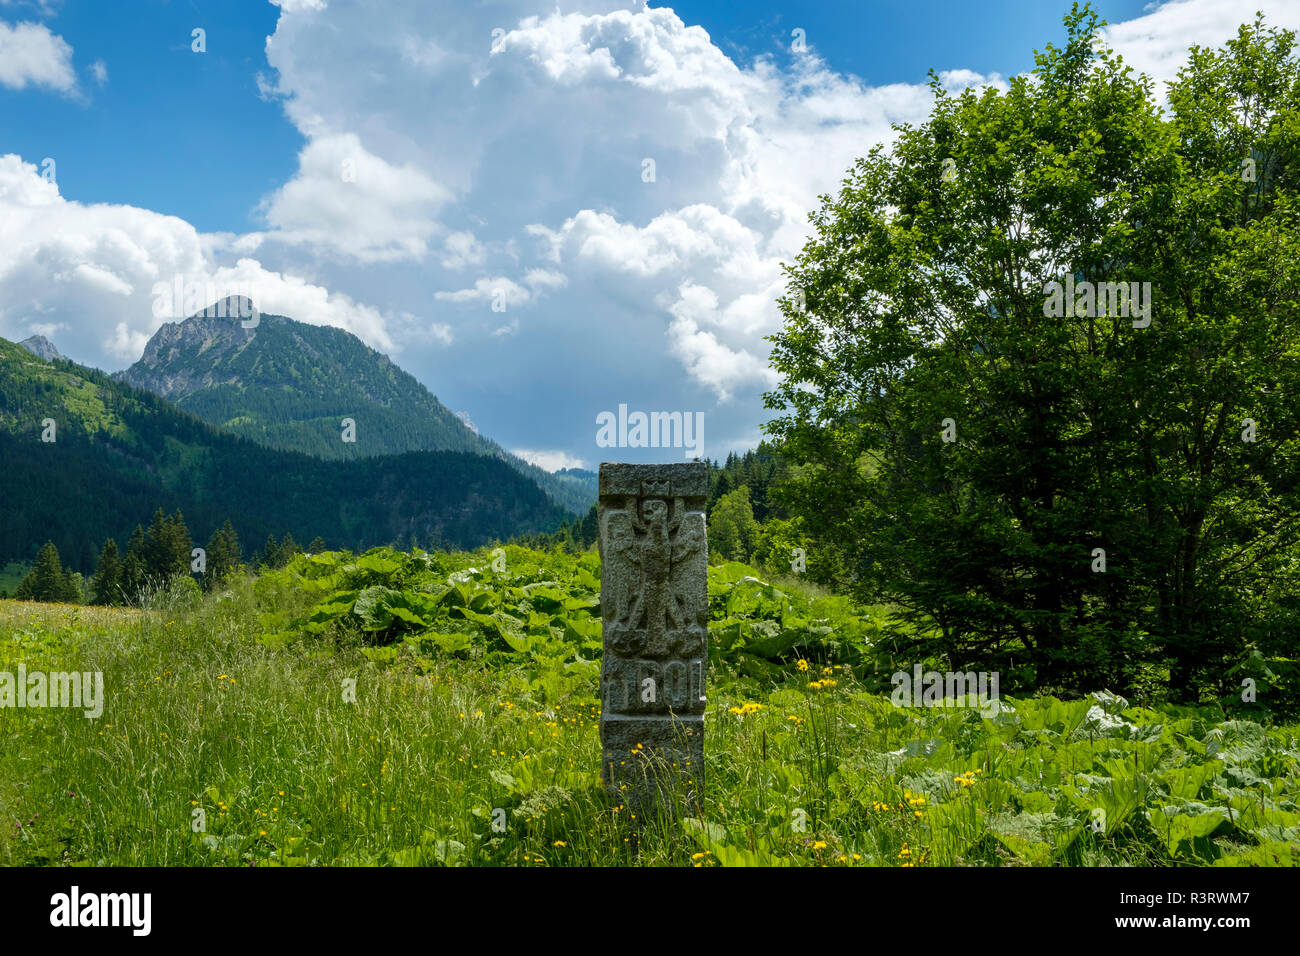 Austria, Tyrol, Tannheim Valley, enge Valley near Graen, landmark and Seichenkopf - Stock Image